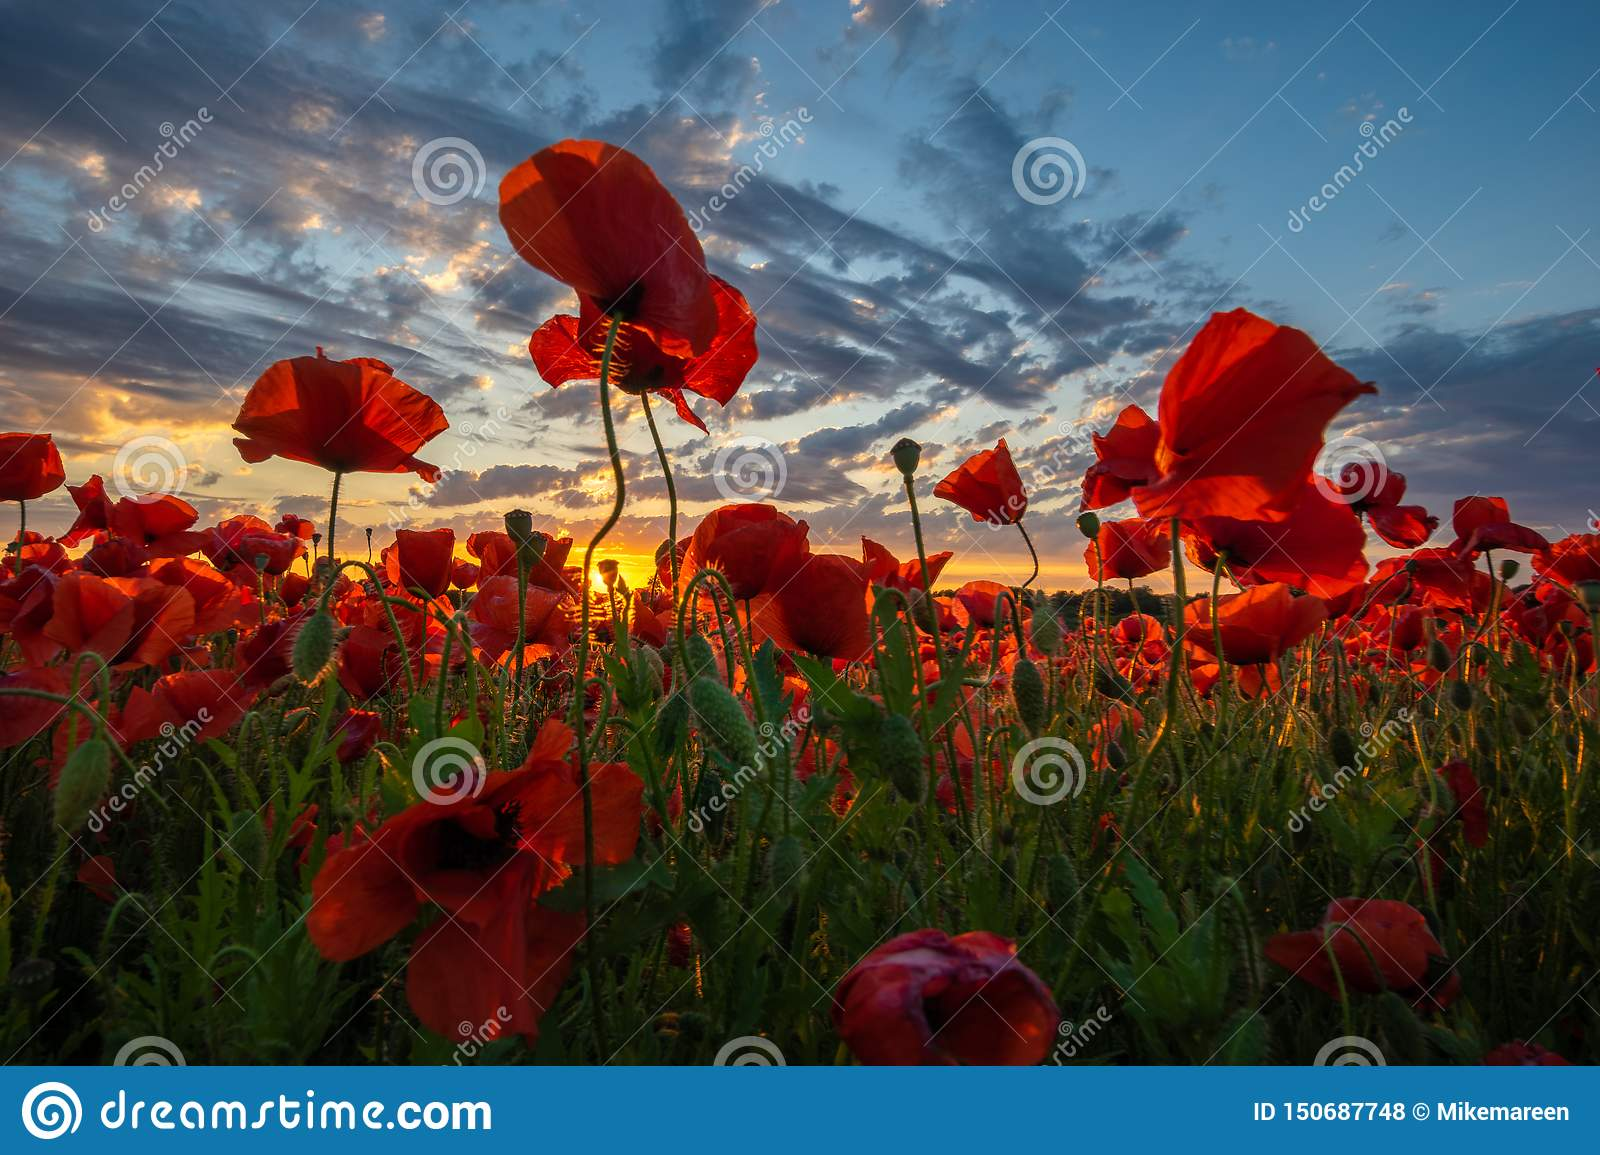 Panorama of a field of red poppies